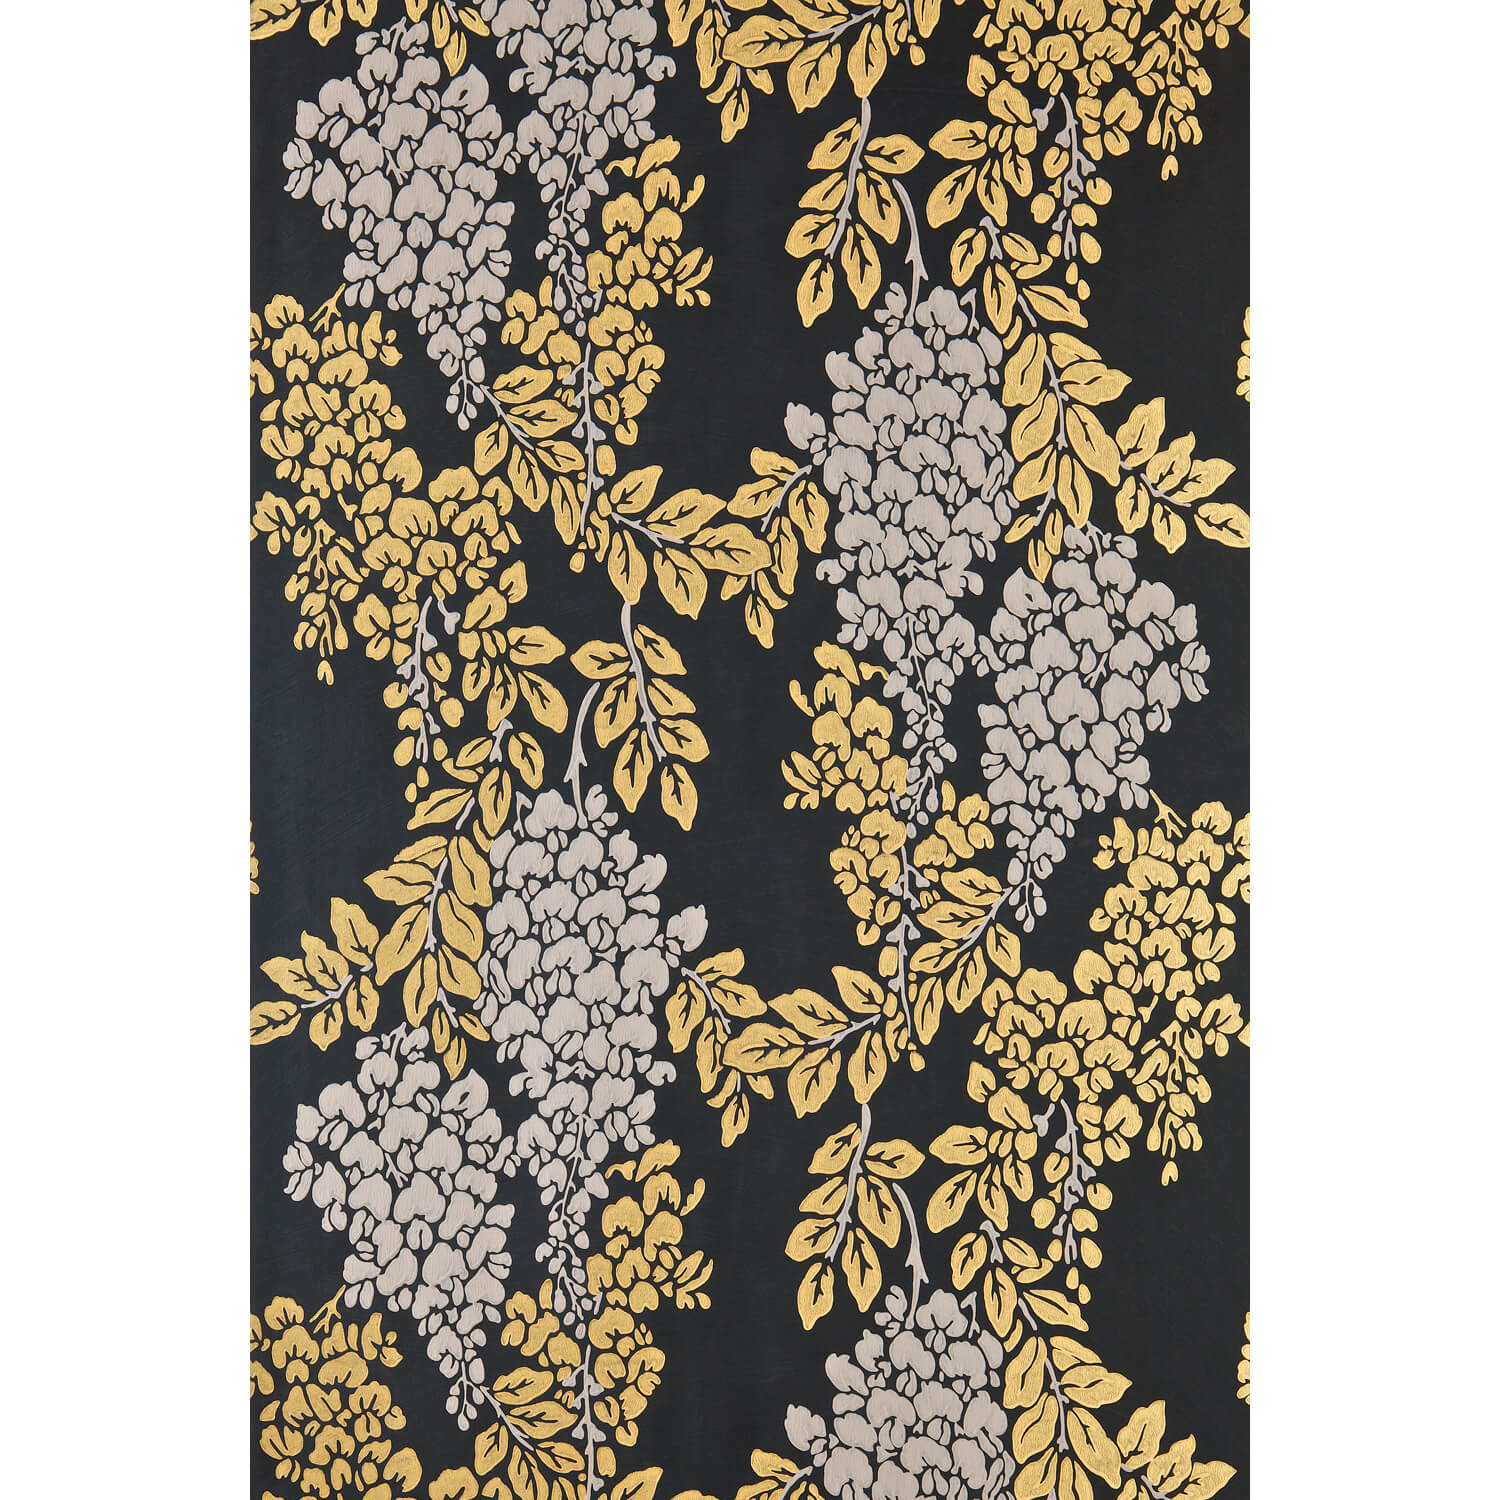 Farrow And Ball Wisteria Wallpaper 22-06, Black/ Yellow